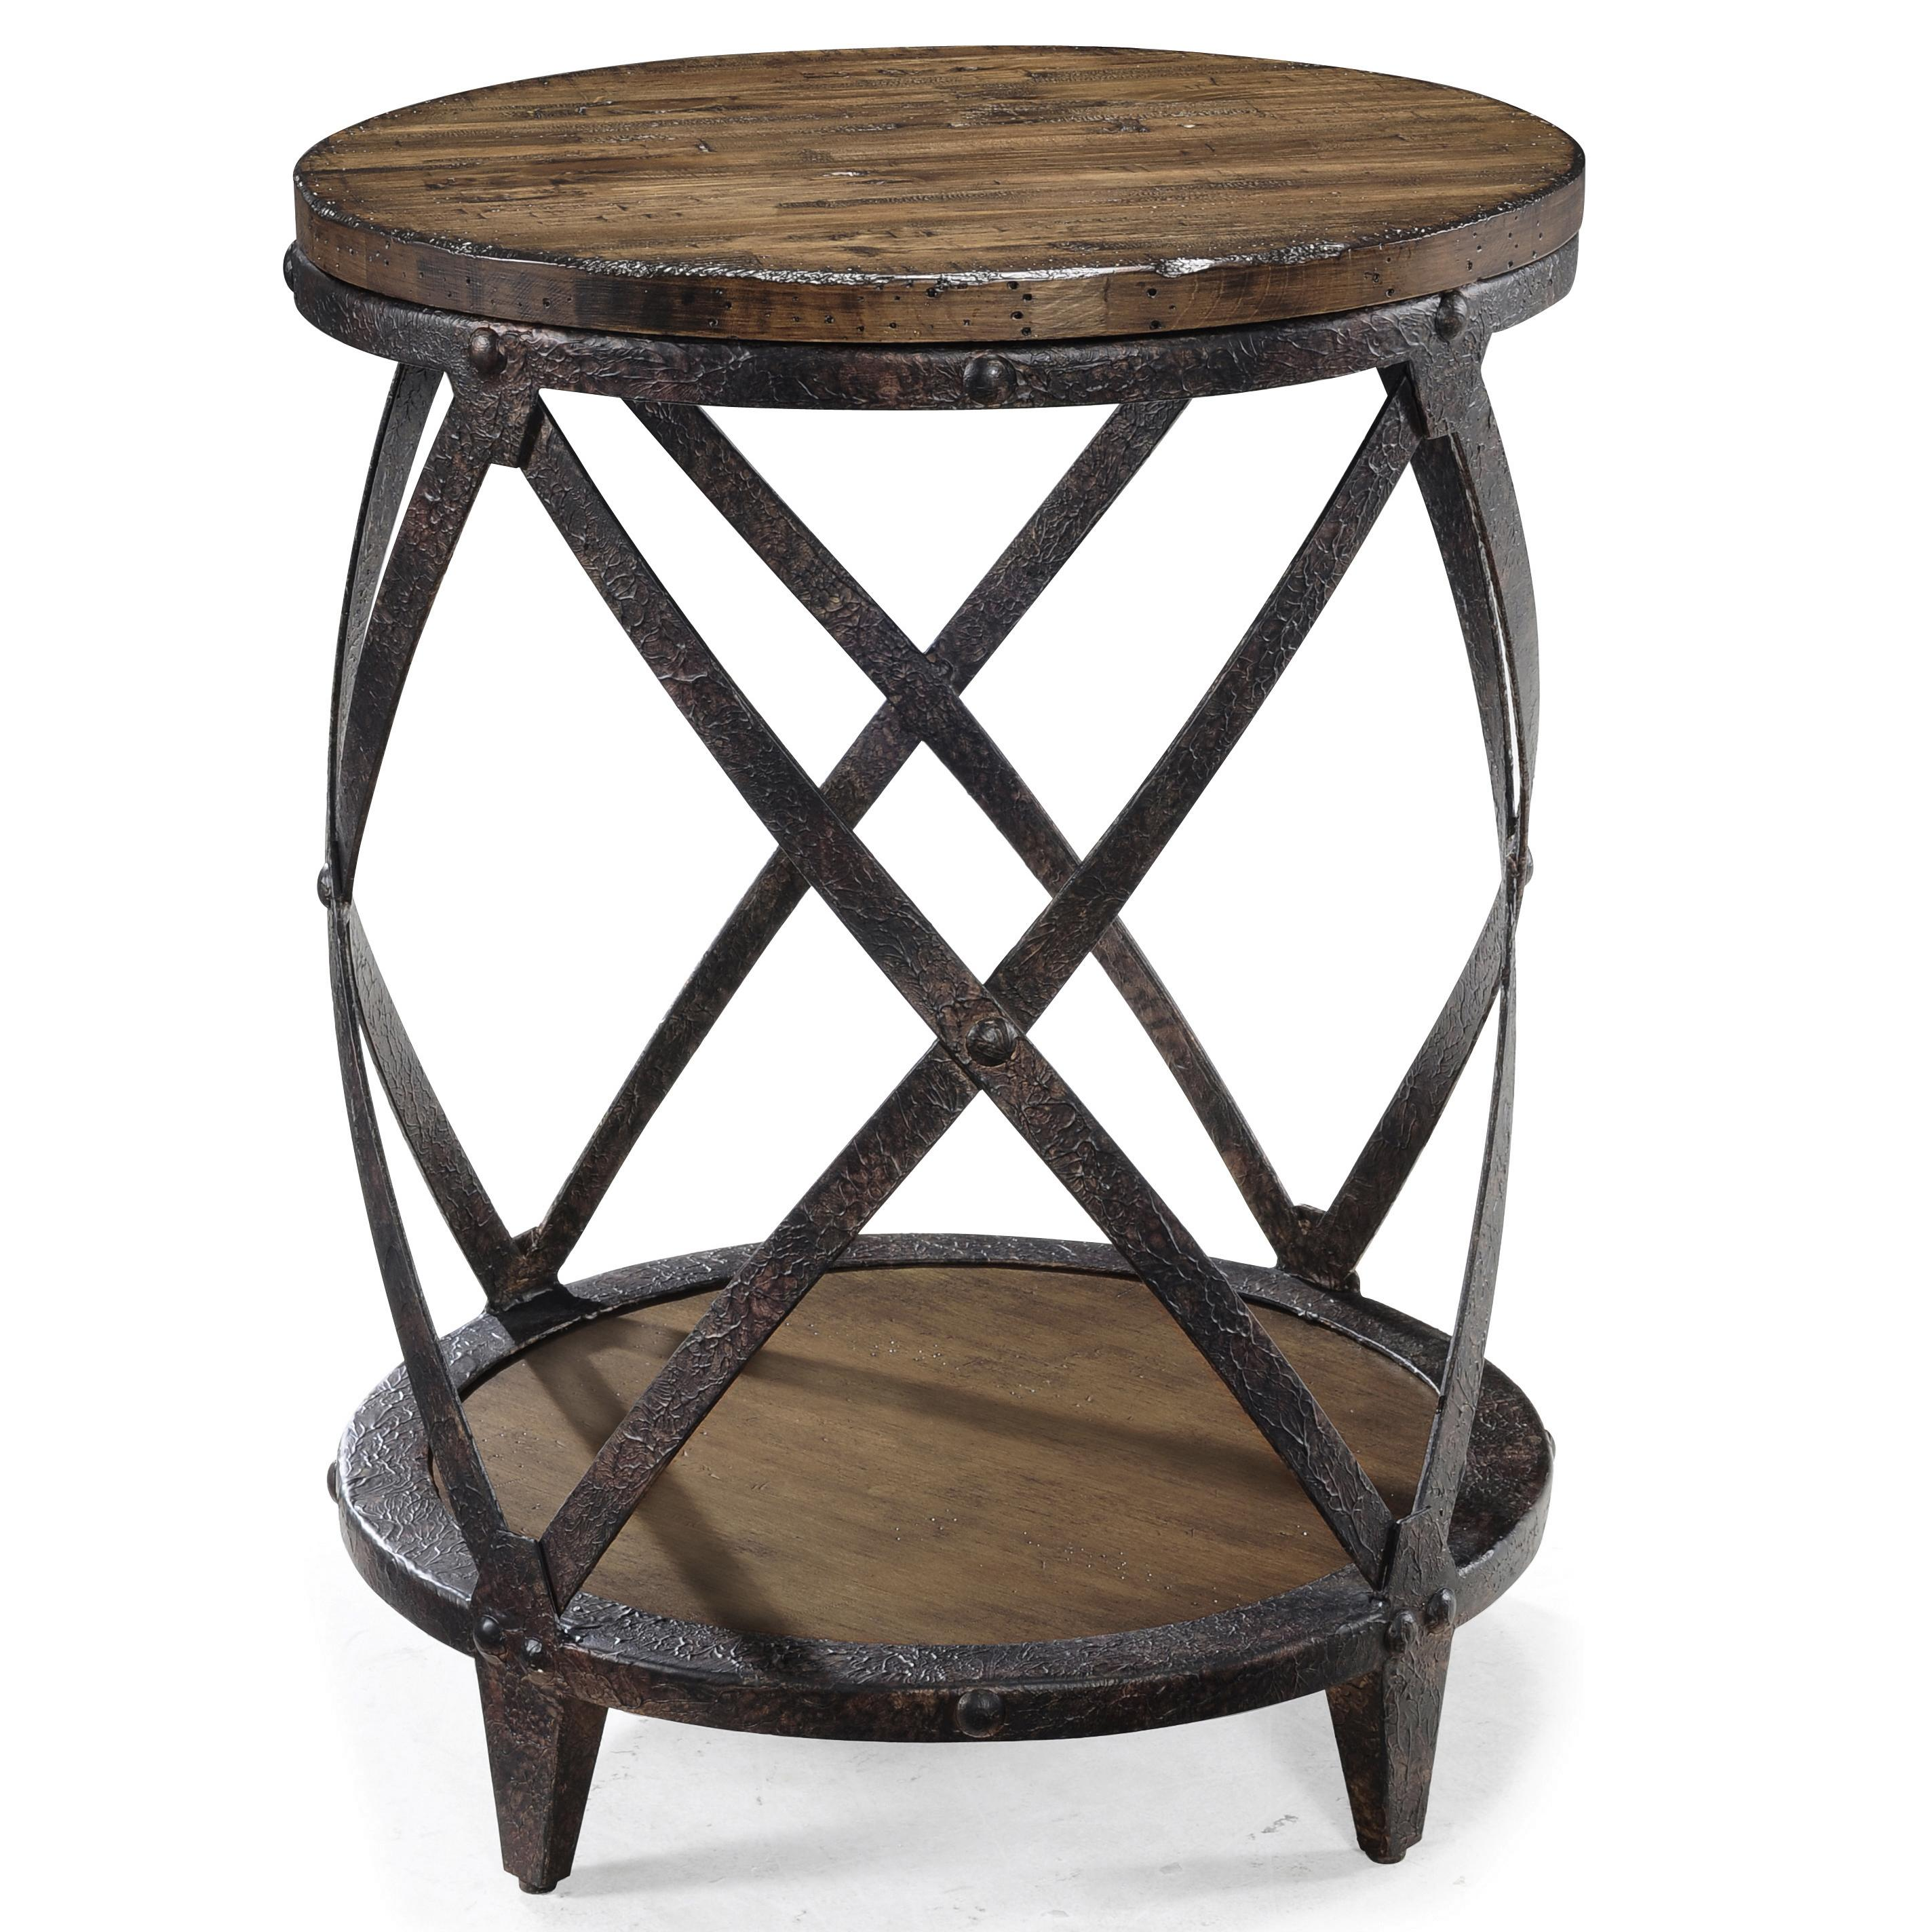 enchanting small round wood end table home tapered replac inch metal tops top depot screw black replacement wooden pub unfinished card garden chairs and toppers dining base